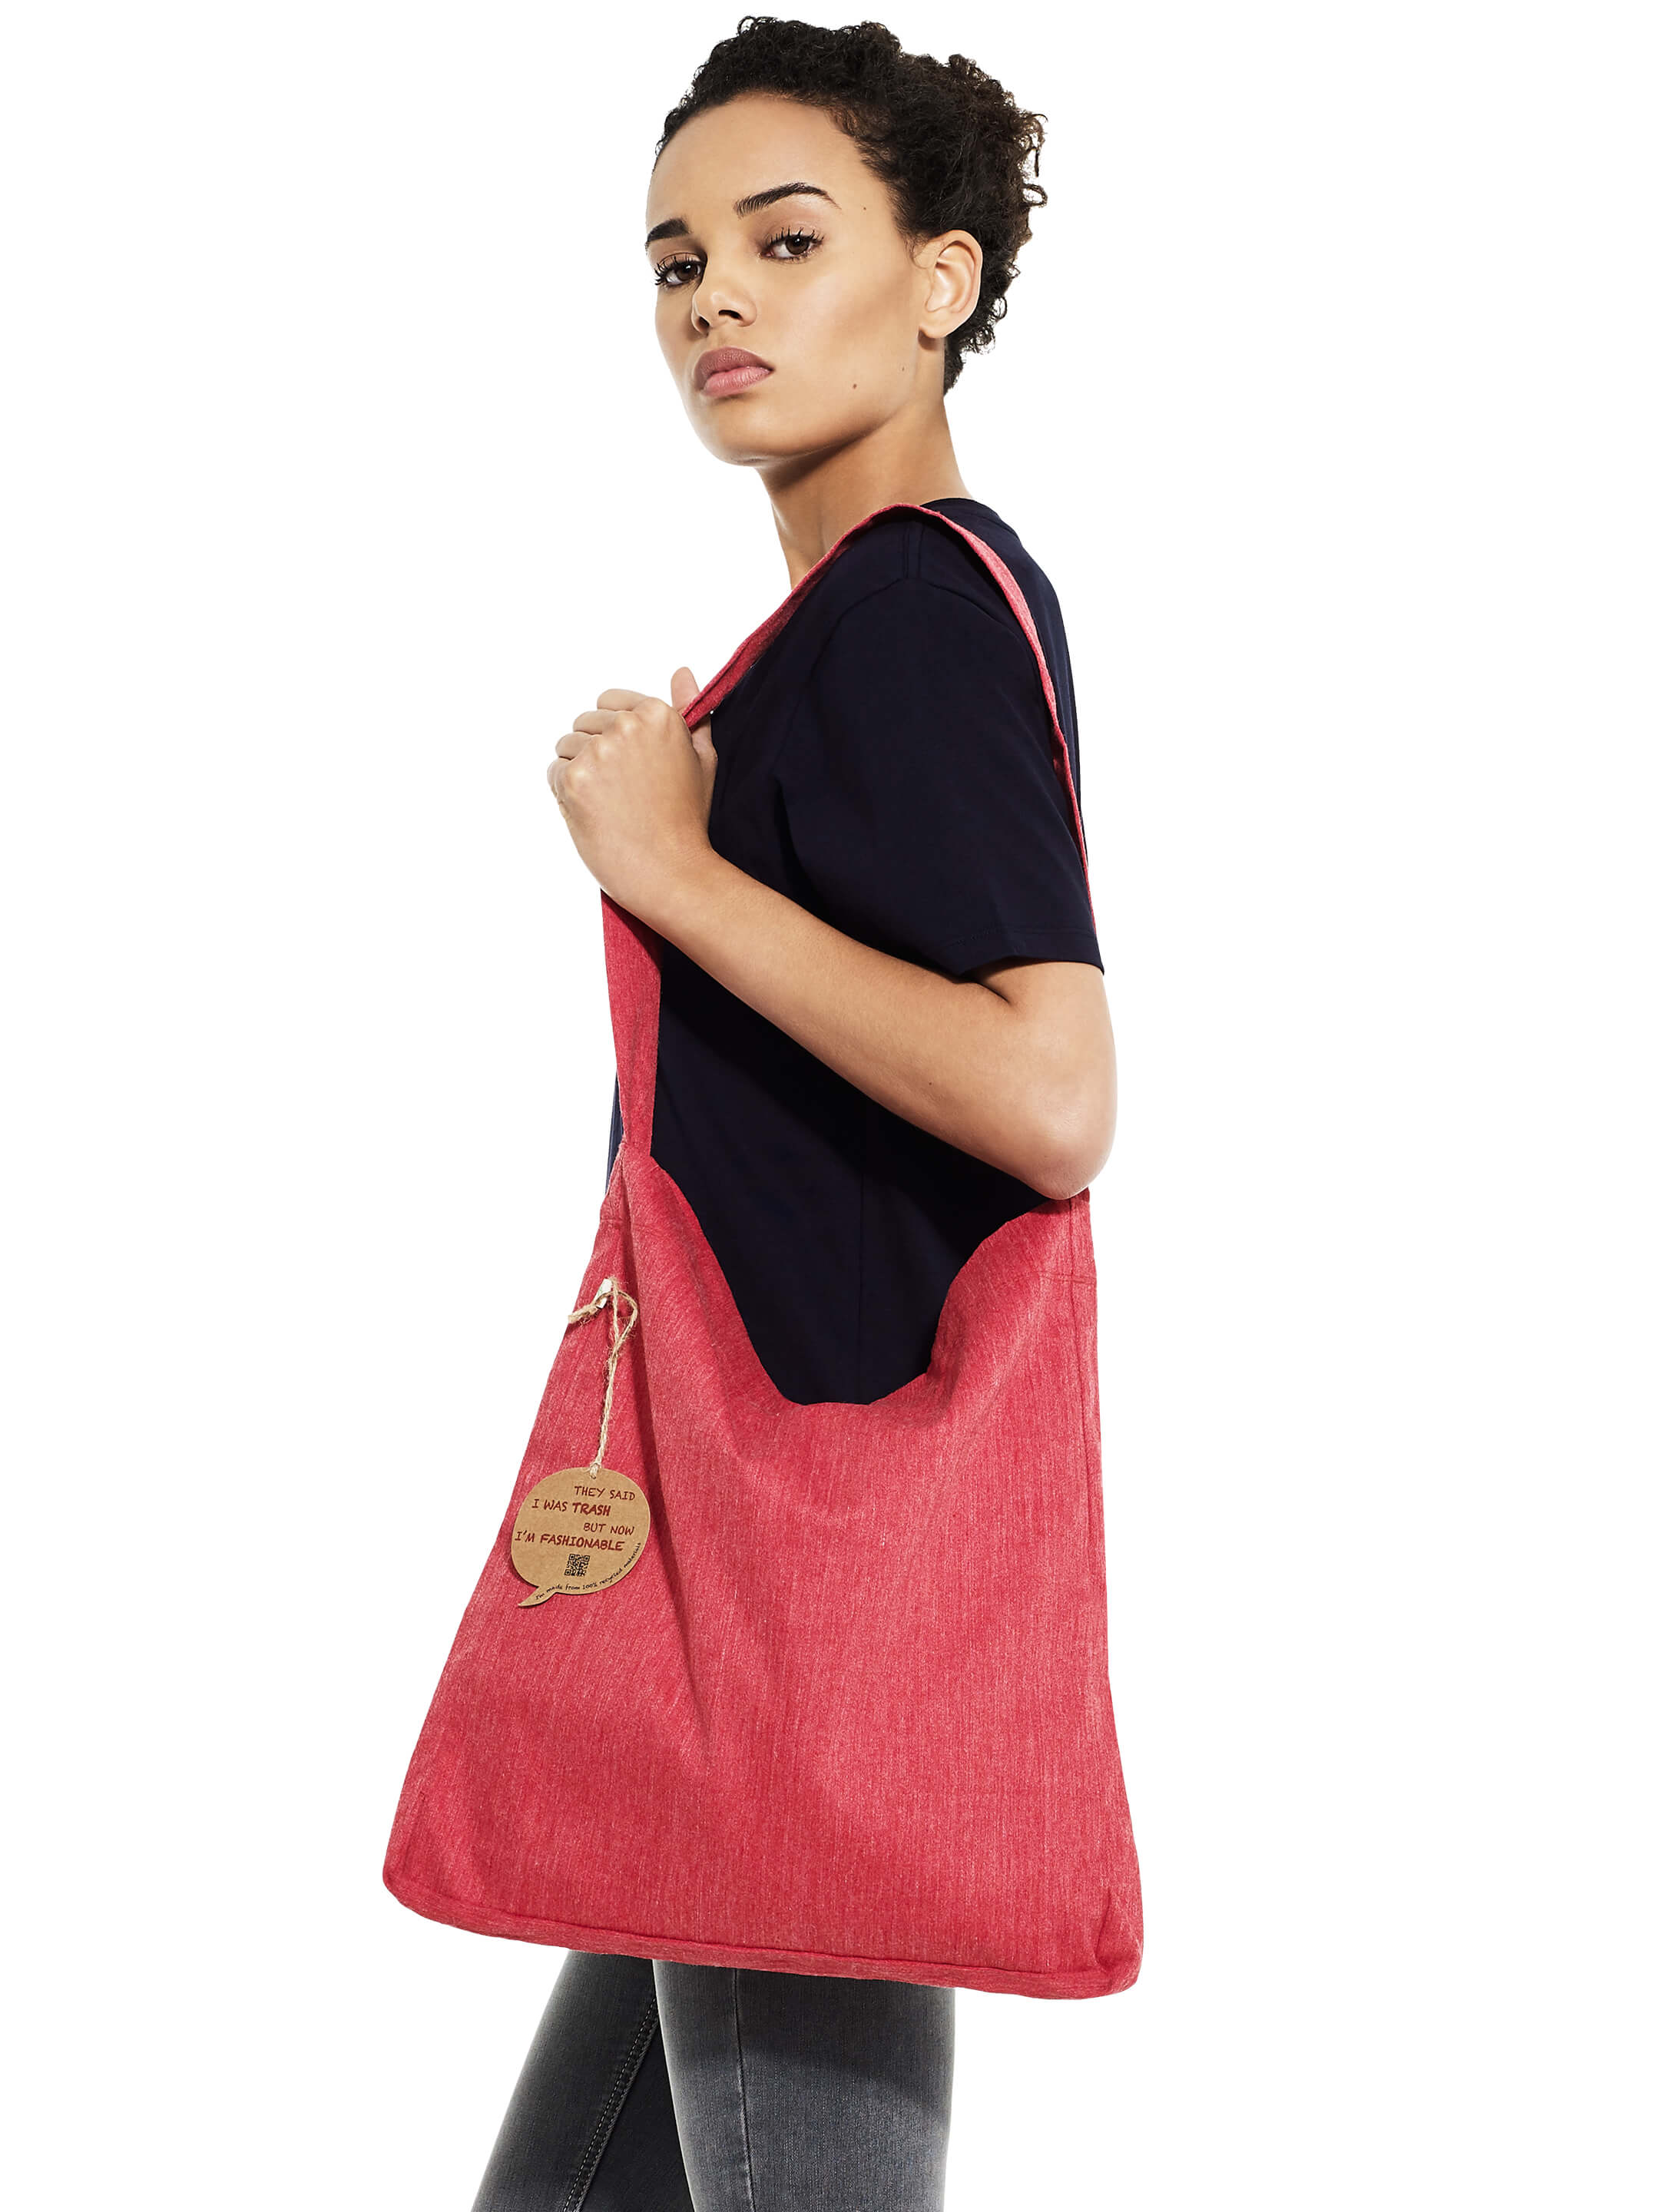 Recycled Tote Sling Bag